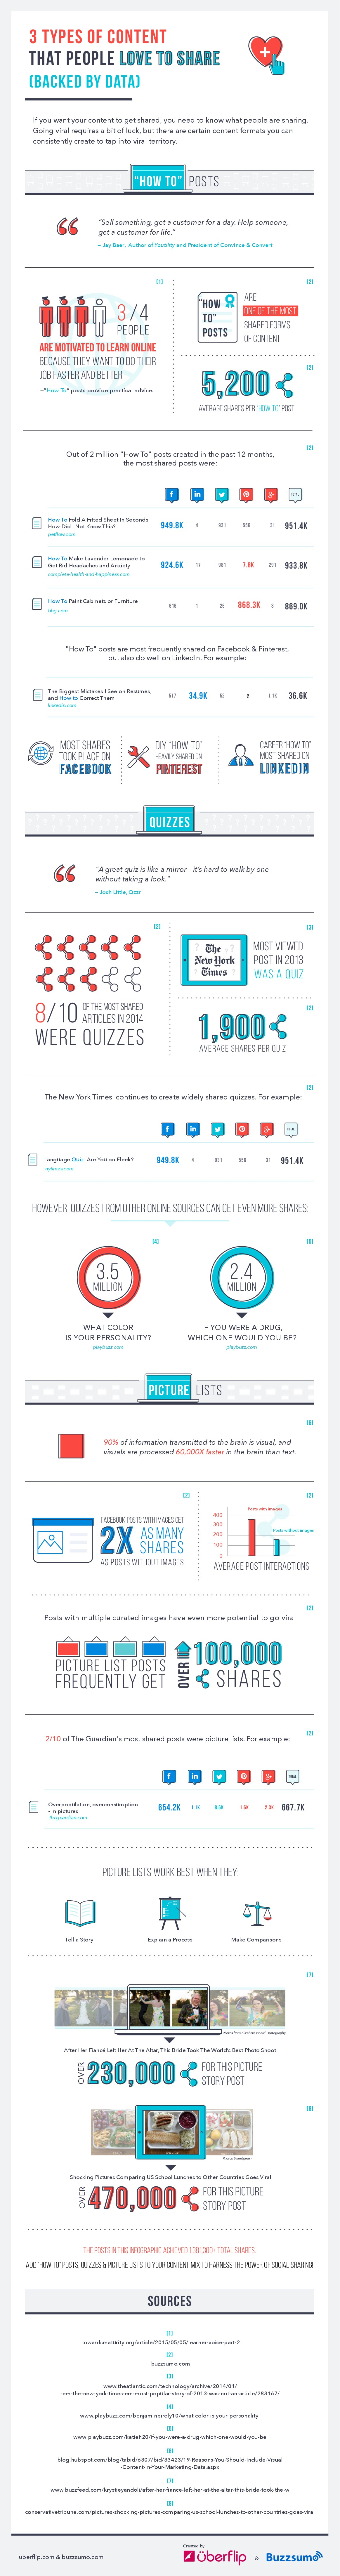 3-types-of-content-that-people-love-to-share-backed-by-data-infographic